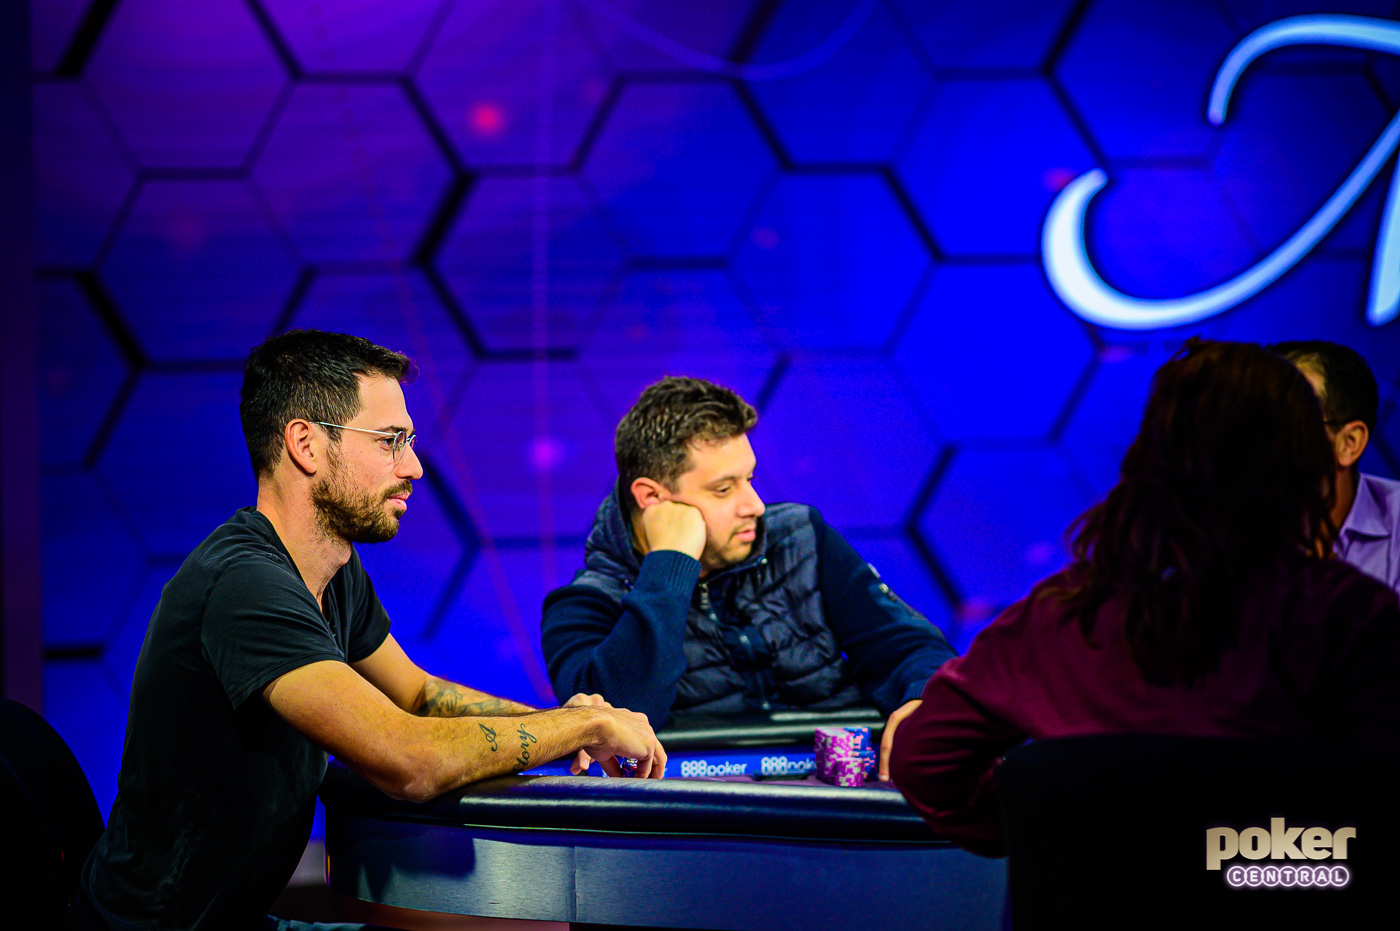 Nick Schulman and Jared Bleznick battle it out at the final table.